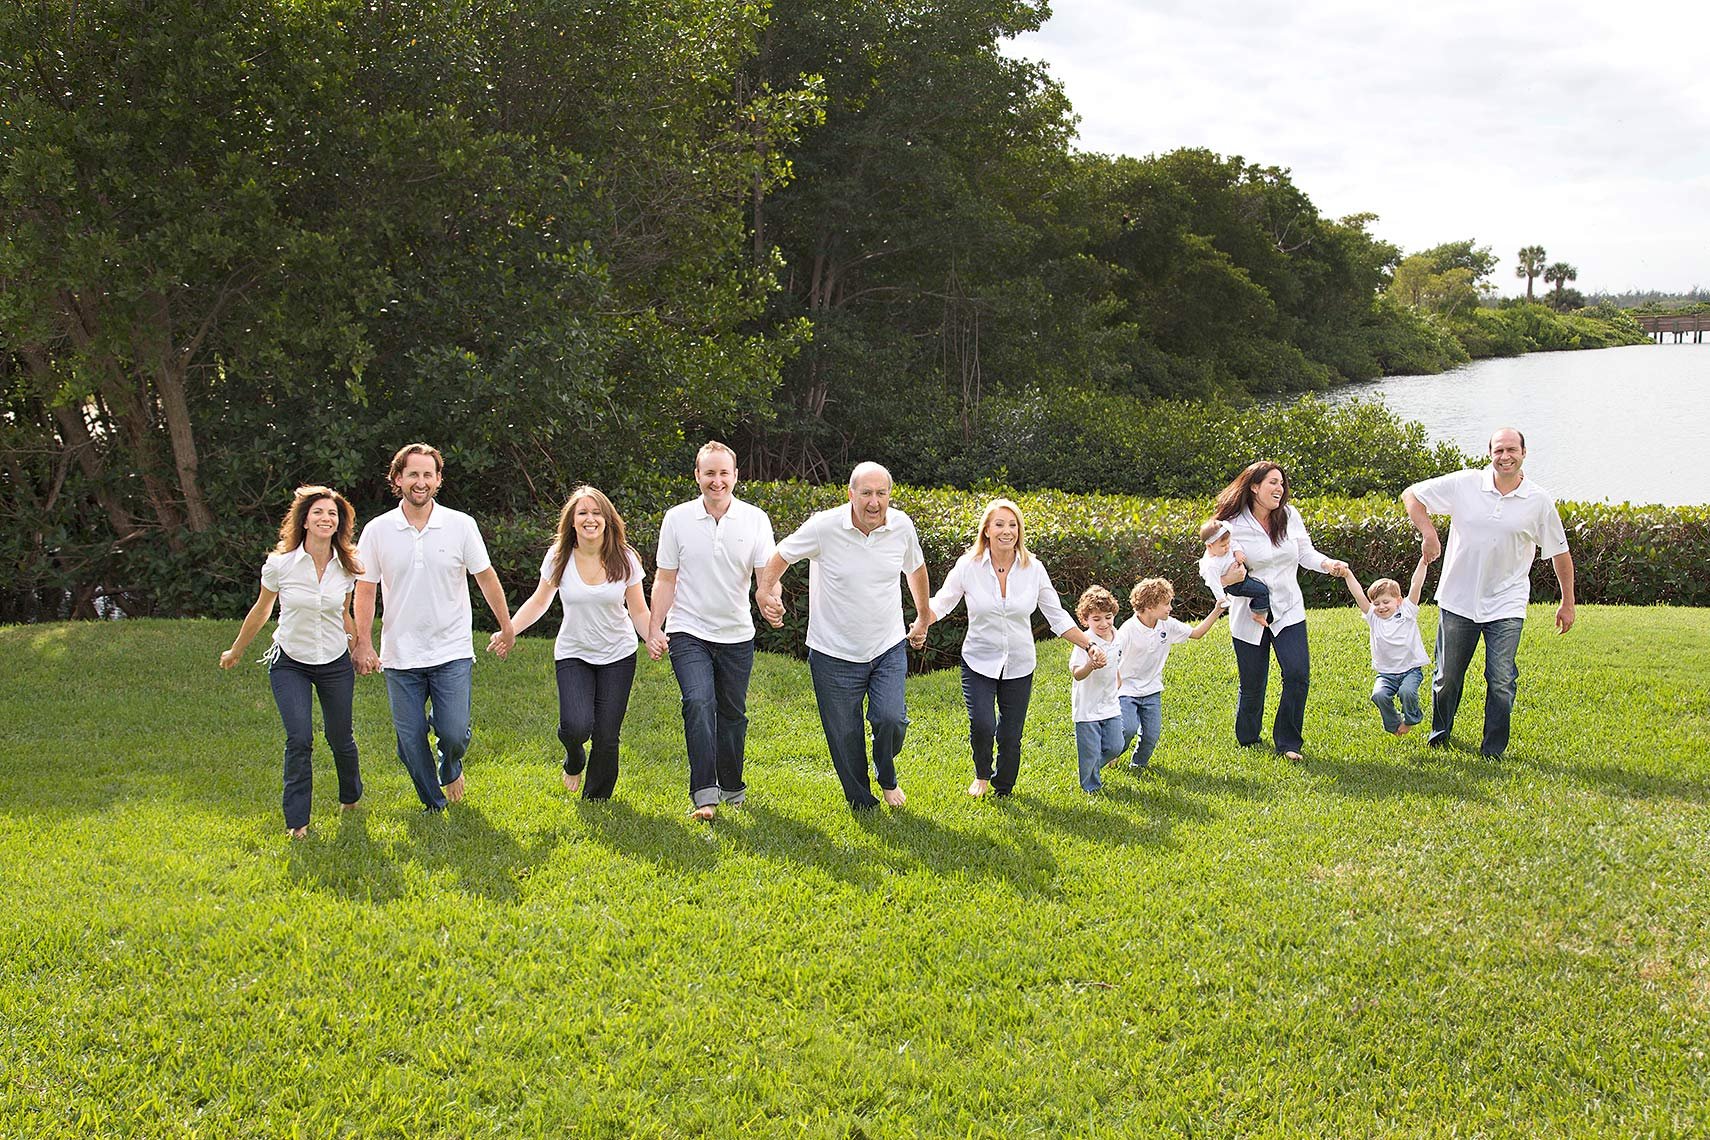 large_family_photography_running_Berhoff_Robert_Holland_Big_Fish_Studios